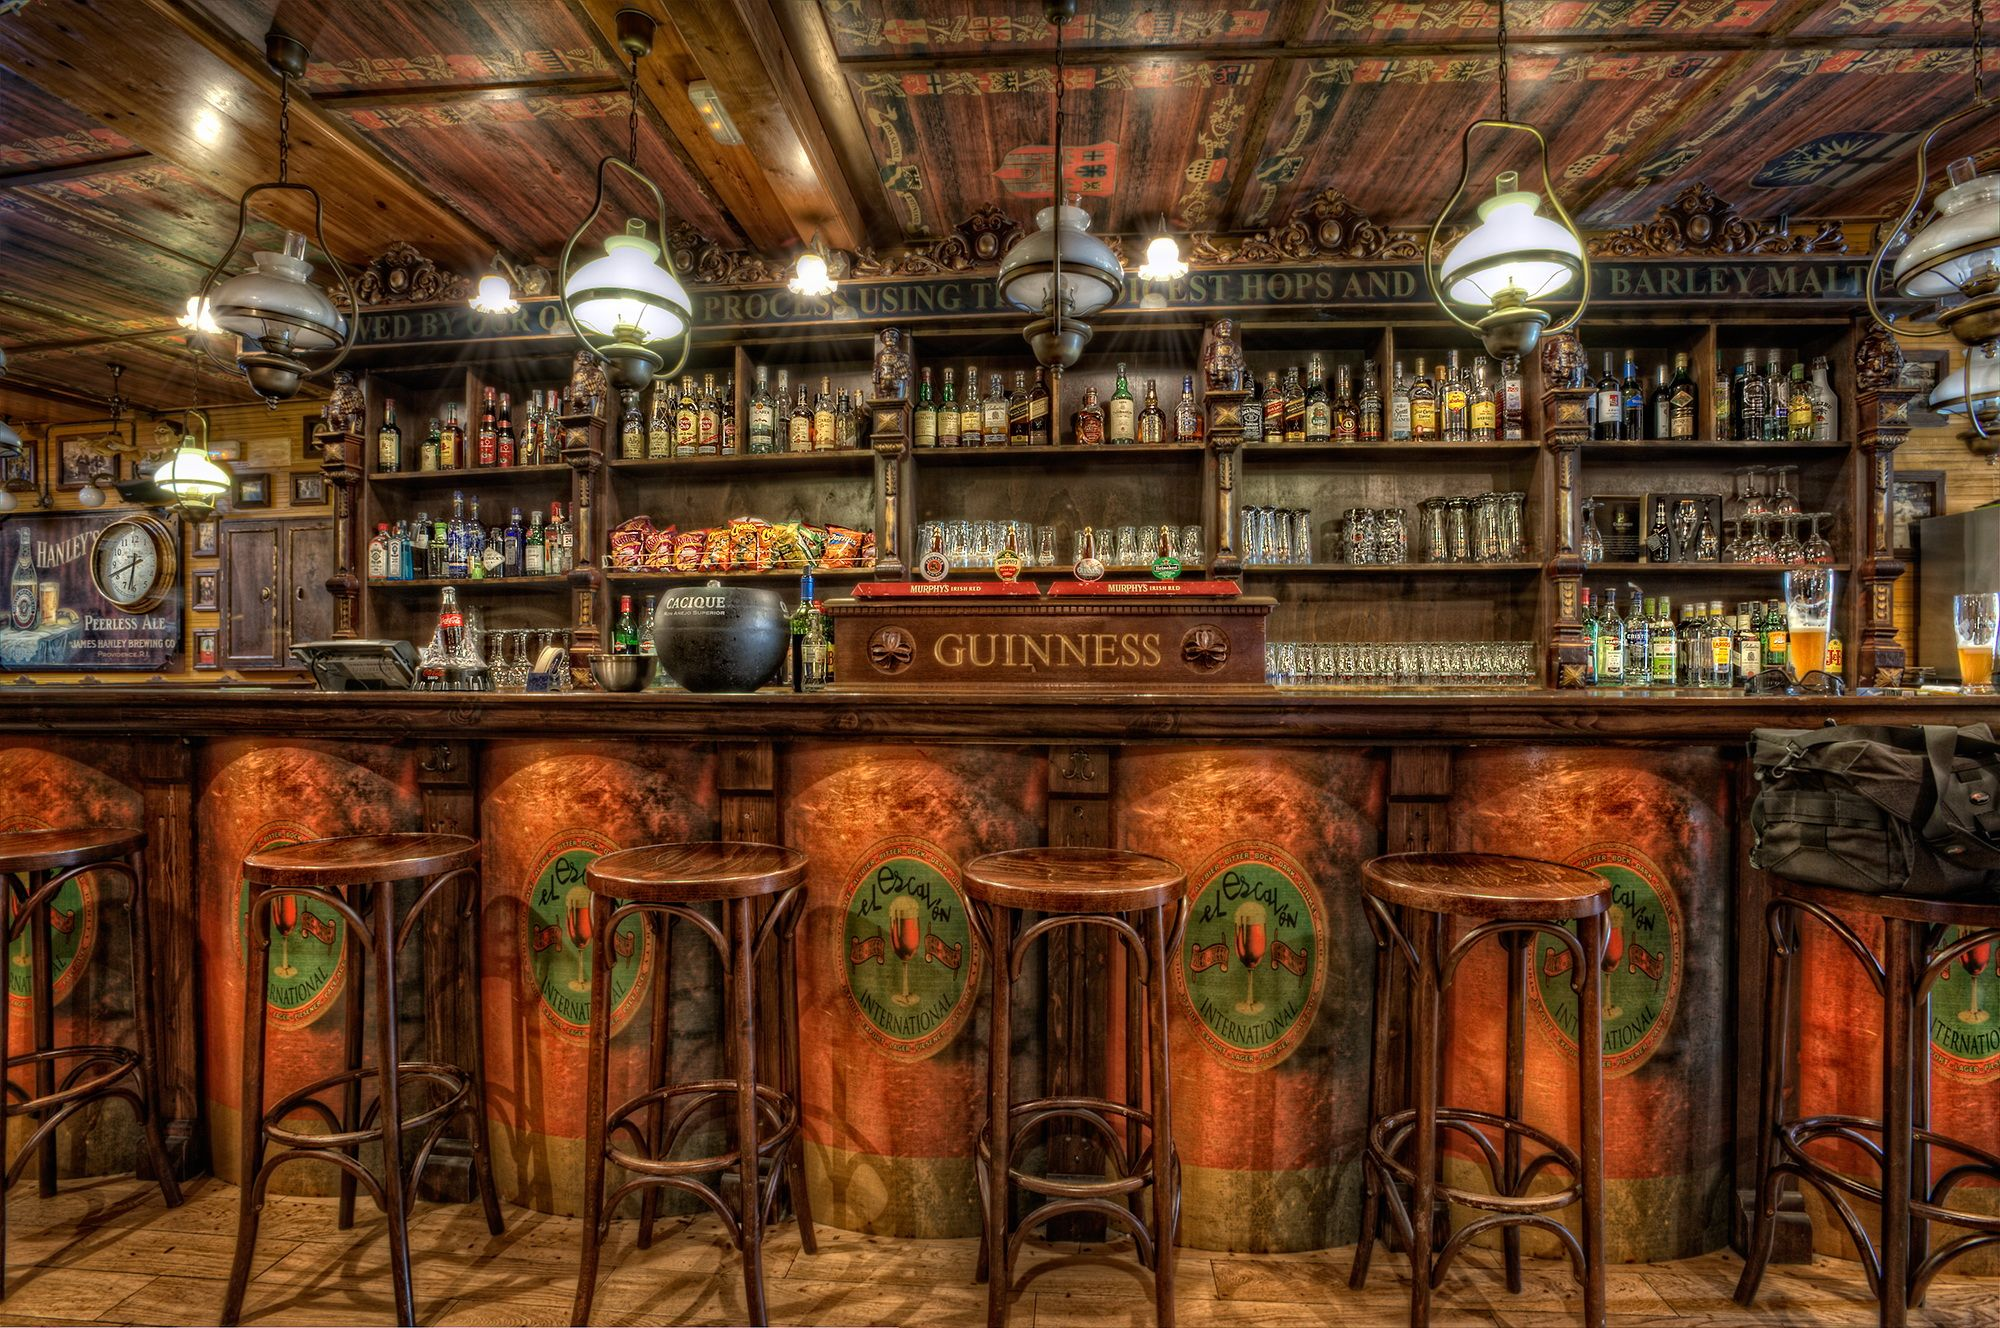 Old Western Home Bars Chairs Ceiling Hdr Design Wooden Bar Room Wallpaper Background Bar Room Wooden Bar Bar Stool Furniture